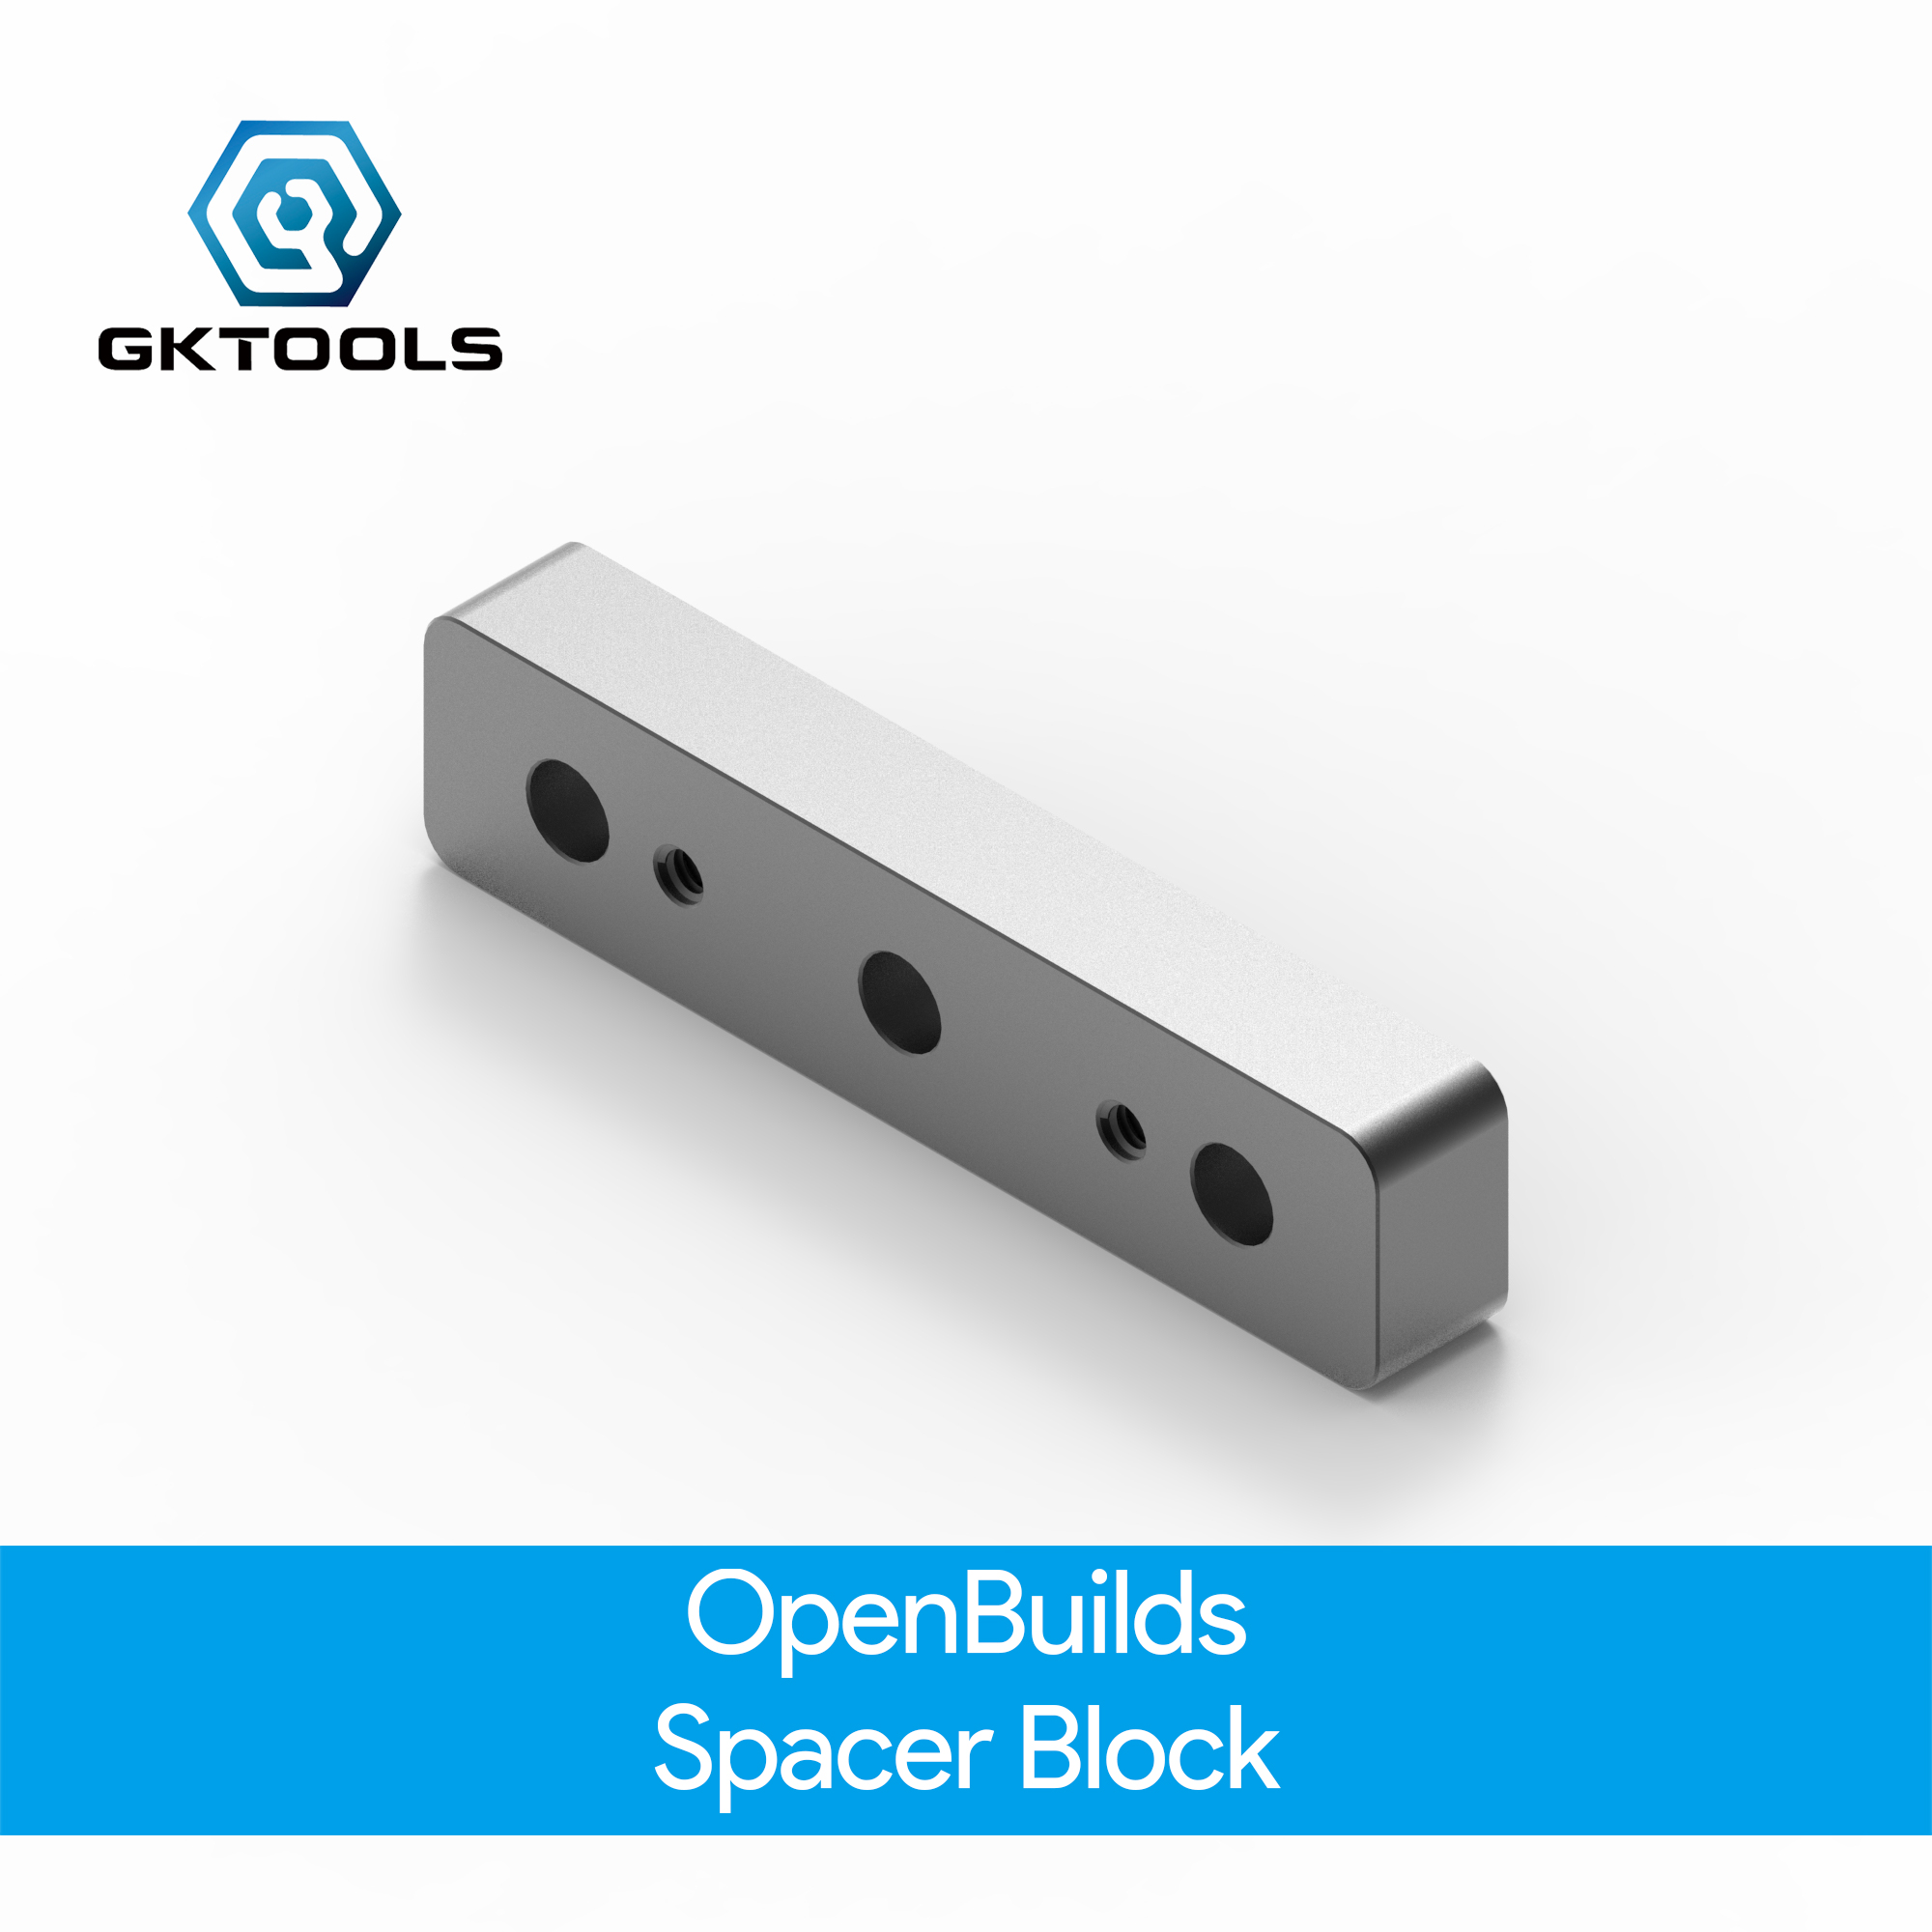 OpenBuilds Spacer Block